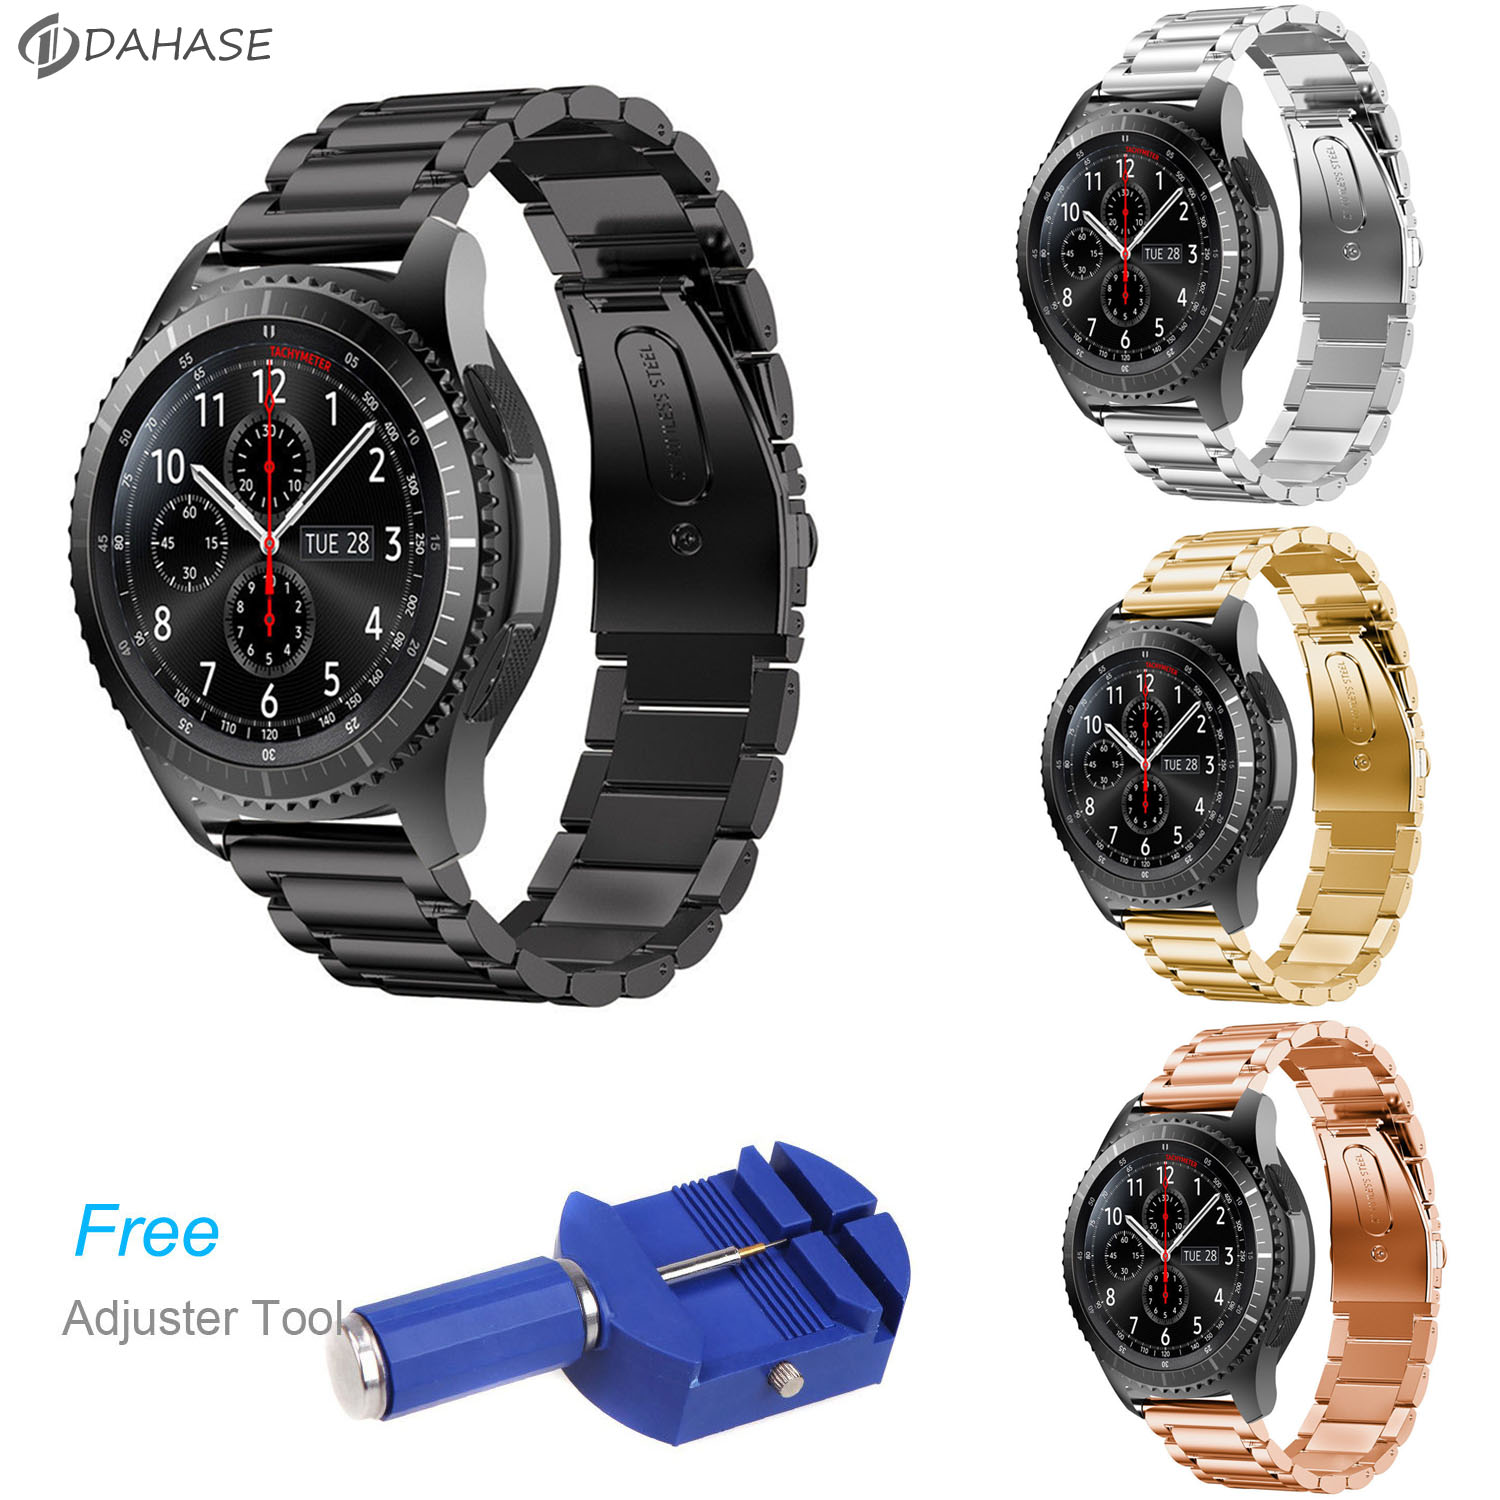 DAHASE Stainless Steel Watch Band for Samsung Gear S3 Frontier Strap for Gear S3 Classic Smart Watch Bracelet with Adjust Tool